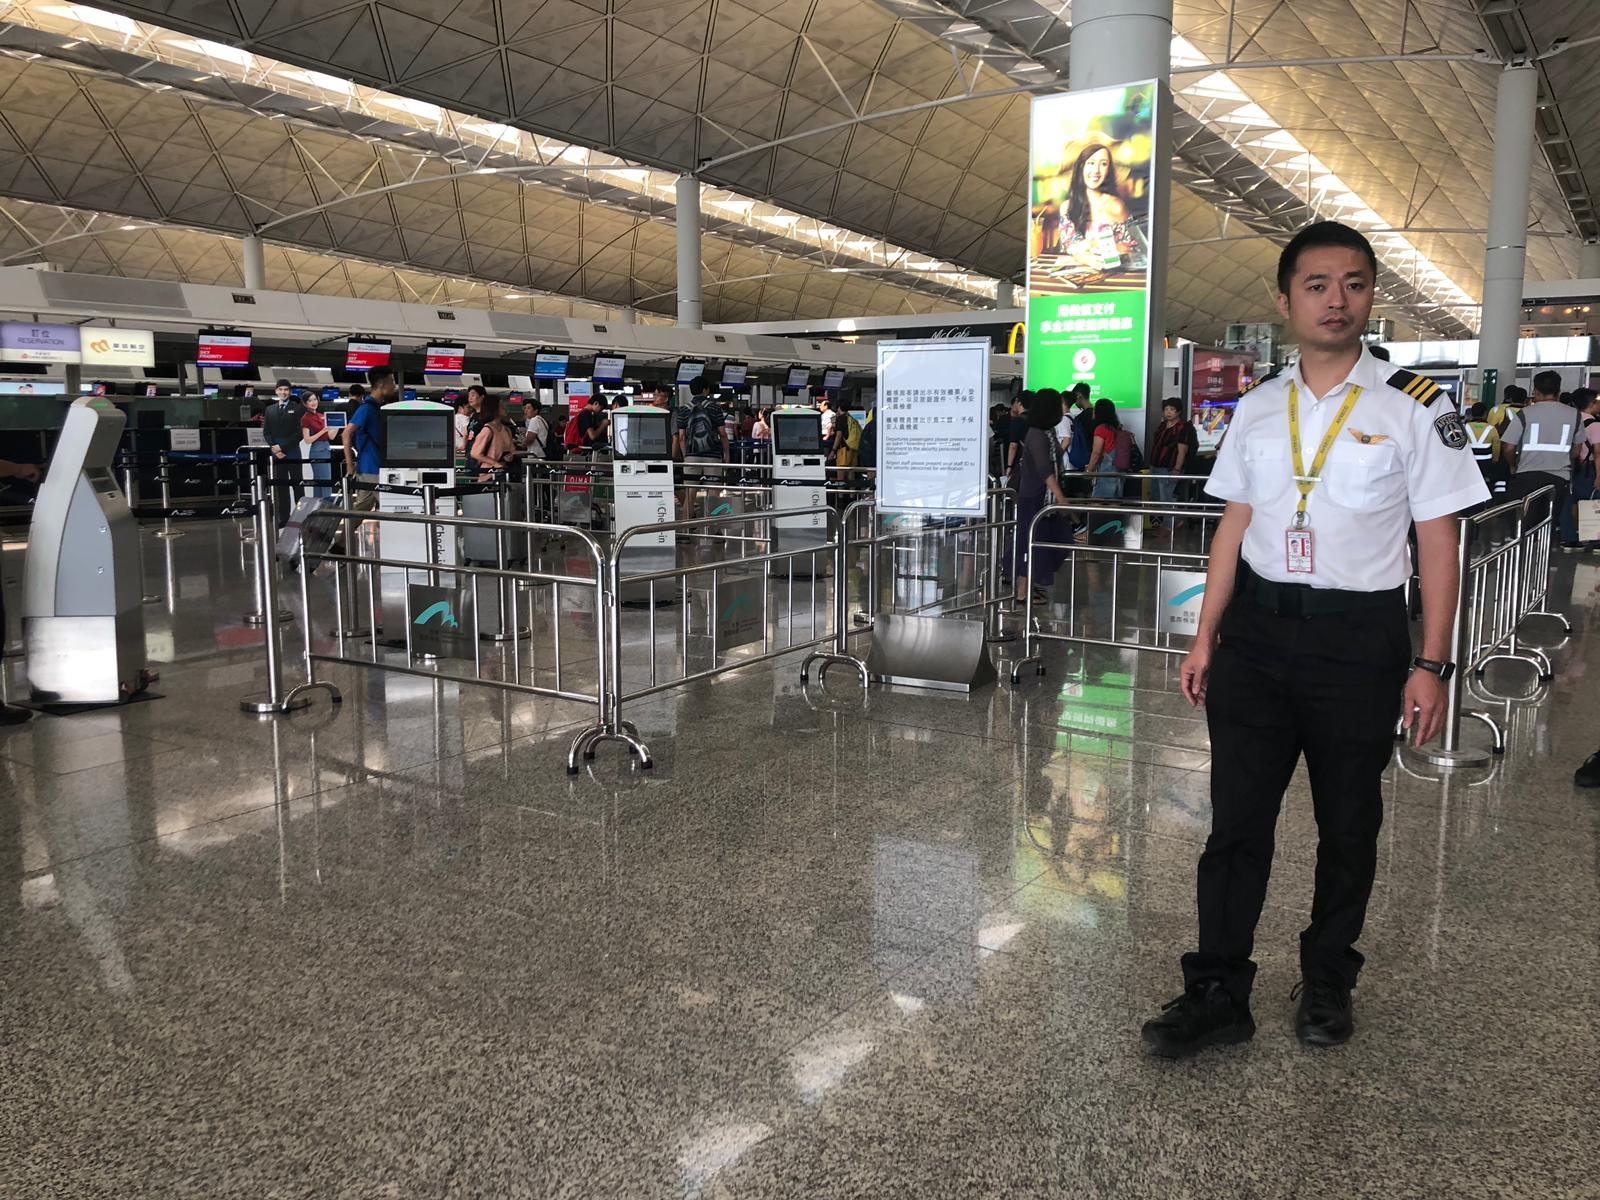 Hong Kong's international airport has extra security measures in place after last night's protests.